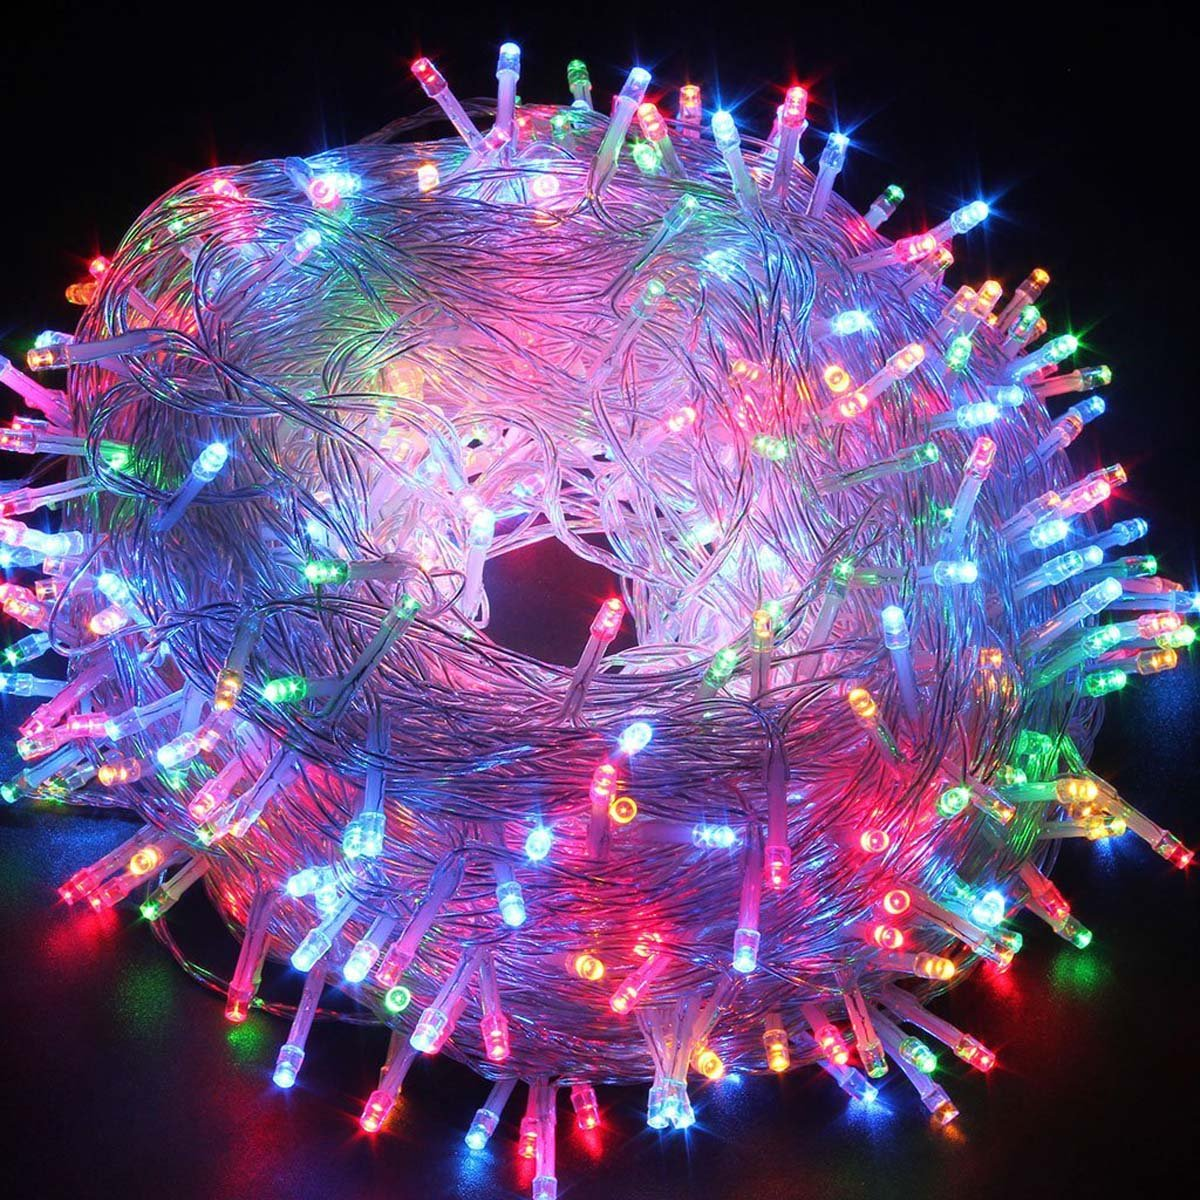 Christmas String Lights FULLBELL 33ft 100 LEDs with Controller Fairy Twinkle Lights Decoration for Chirstmas Tree Garden Multi Stings Connectable Transparent Wire Multi Color